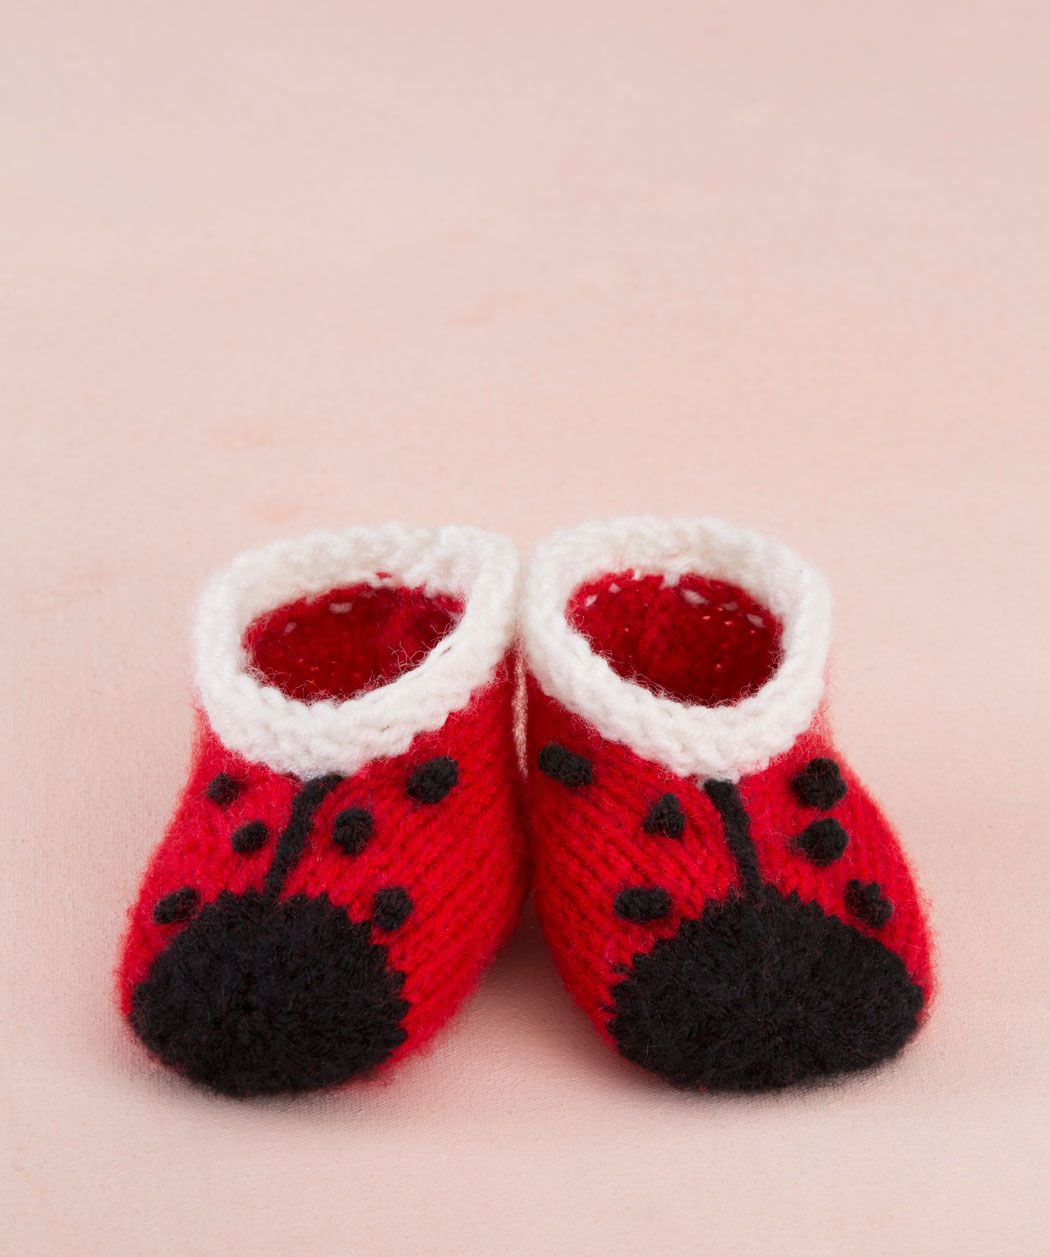 Sweet lady bug booties annegeddes knitting redheartyarns new free knitting pattern for lady bug booties lorna miser designed these adorable baby booties for your love bug pattern is rated easy by red heart and bankloansurffo Choice Image